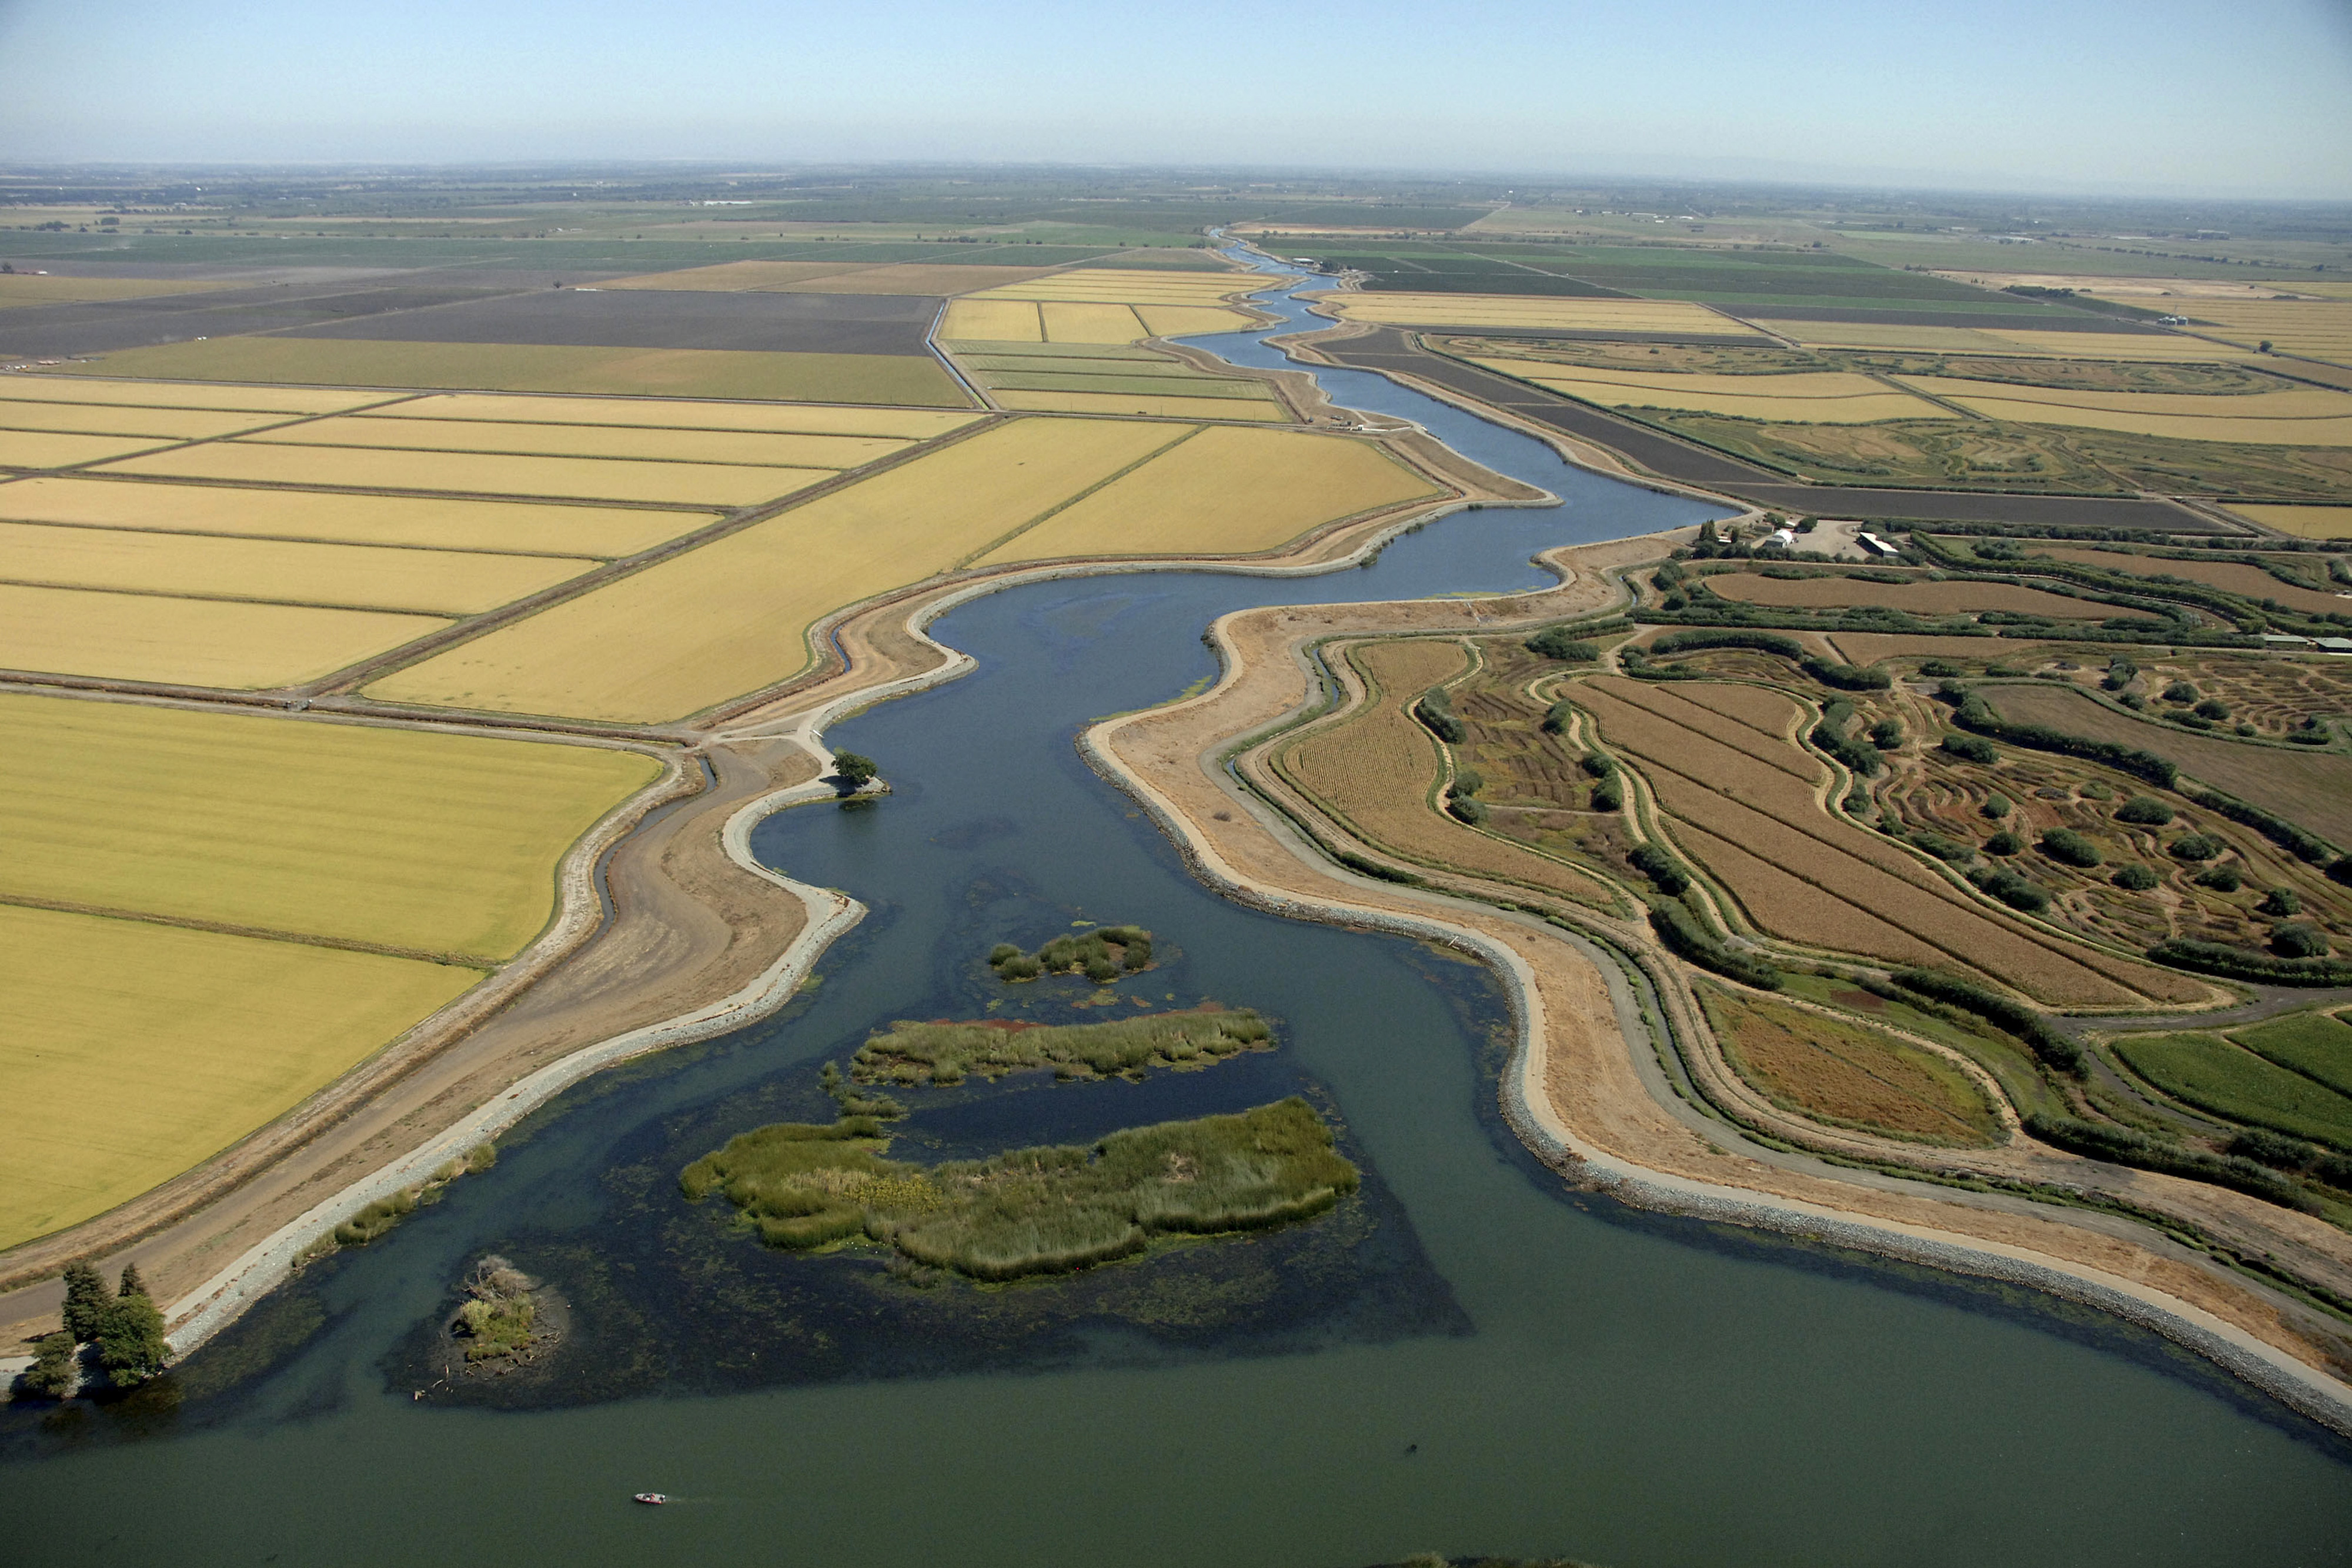 Aerial views of waterways & sloughs meandering through The Delta in California.